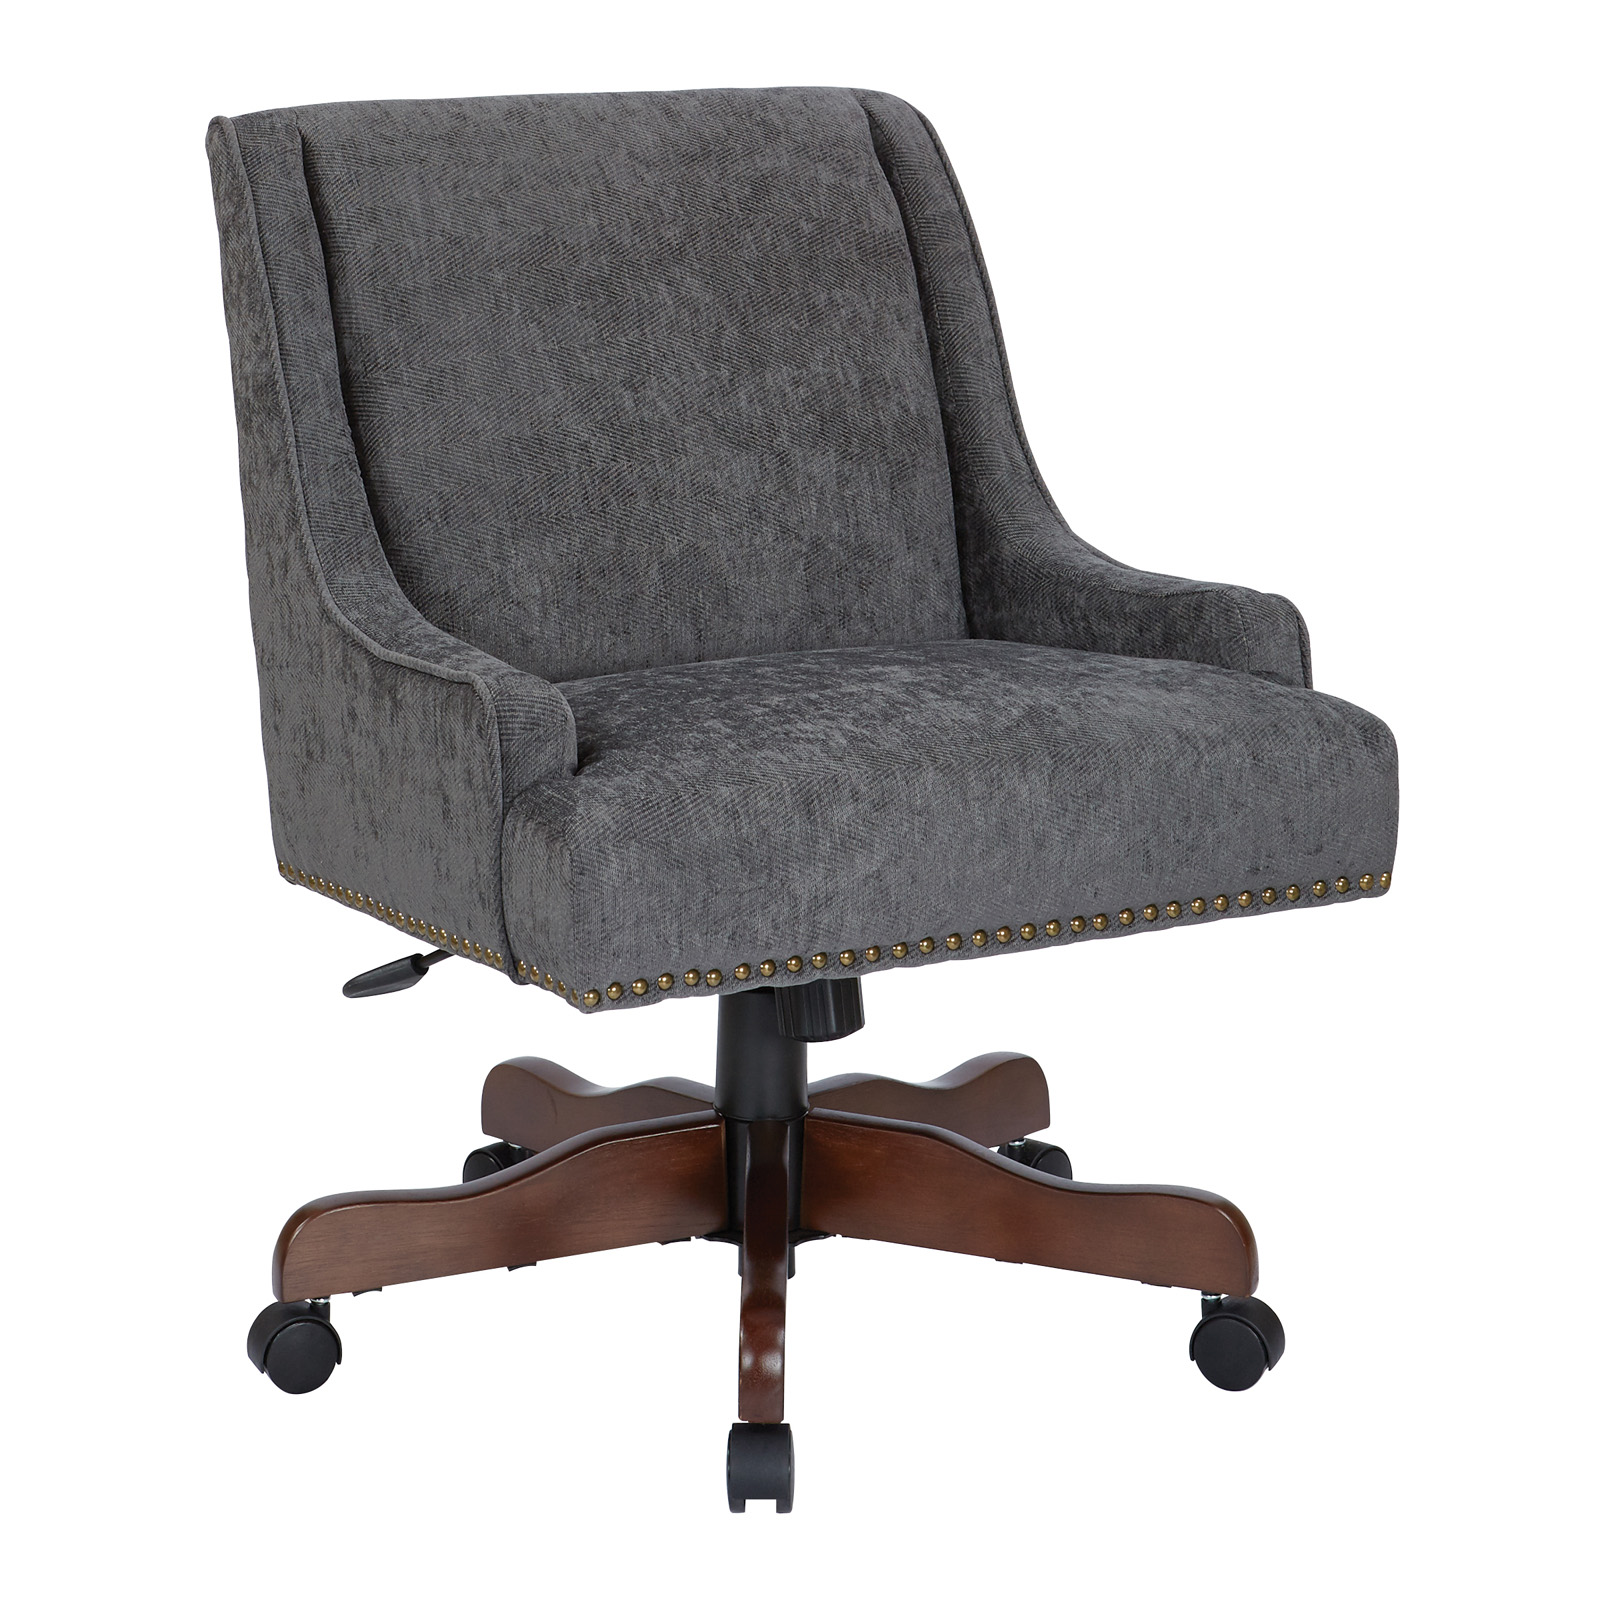 bassett ellis executive chair power lift modern contemporary hayneedle inspired by everton upholstered office